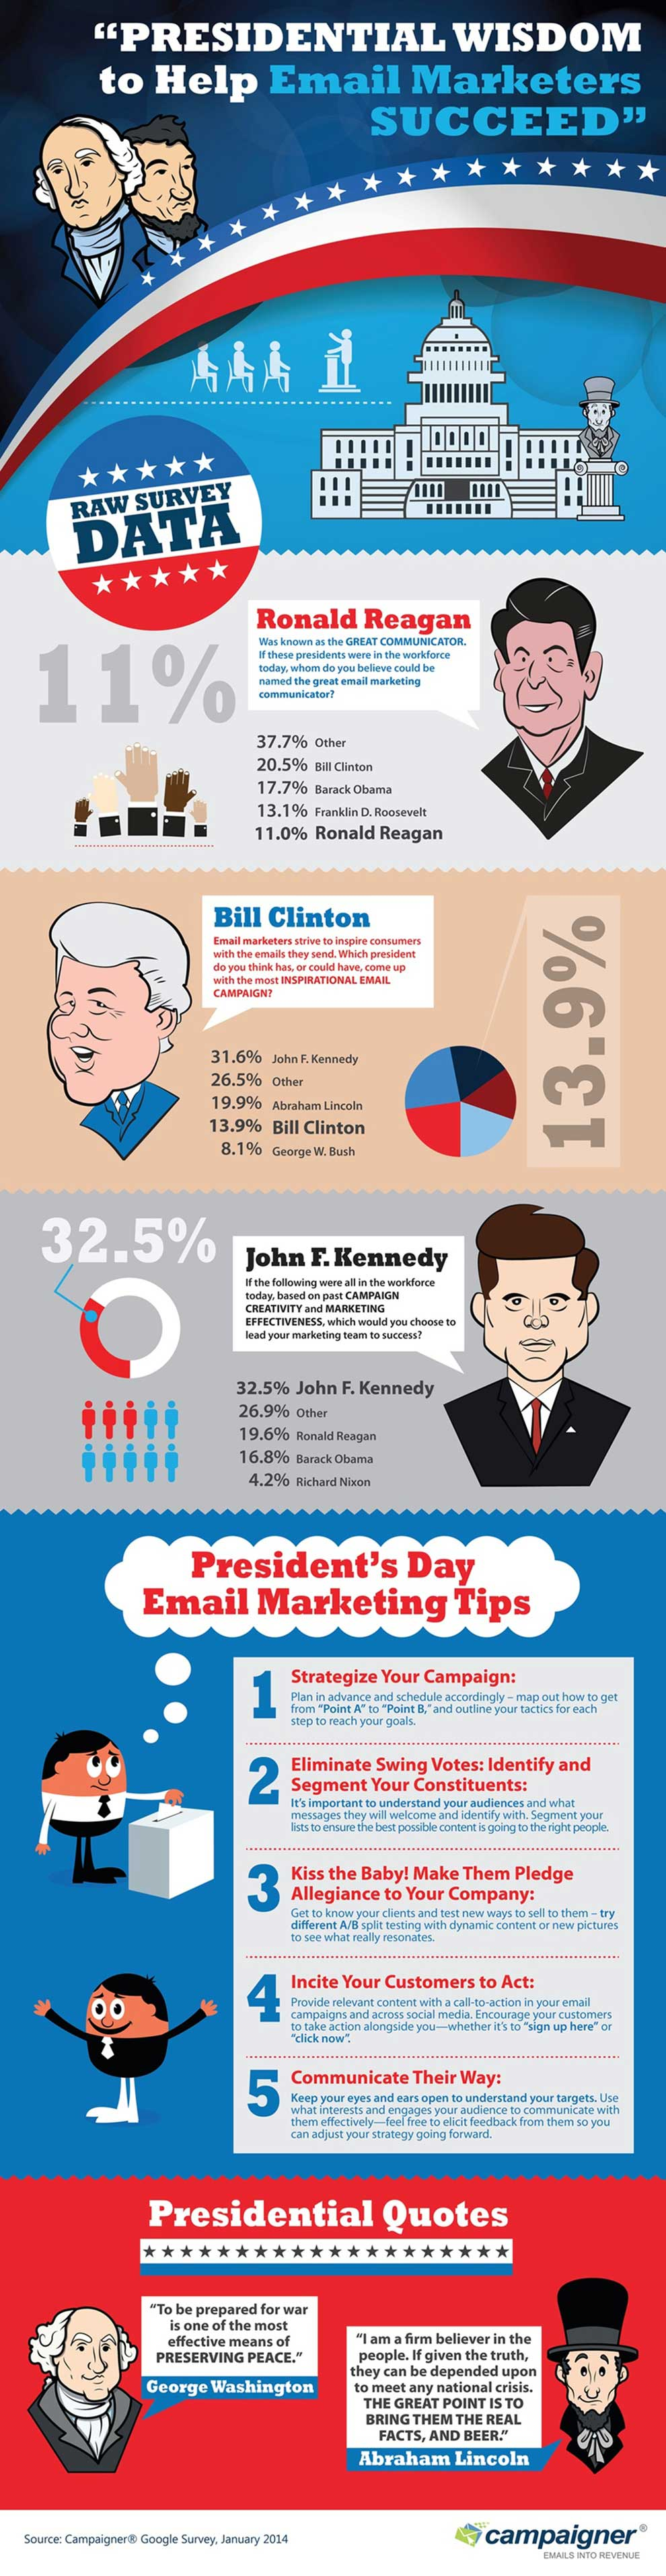 presidential wisdom for email marketers